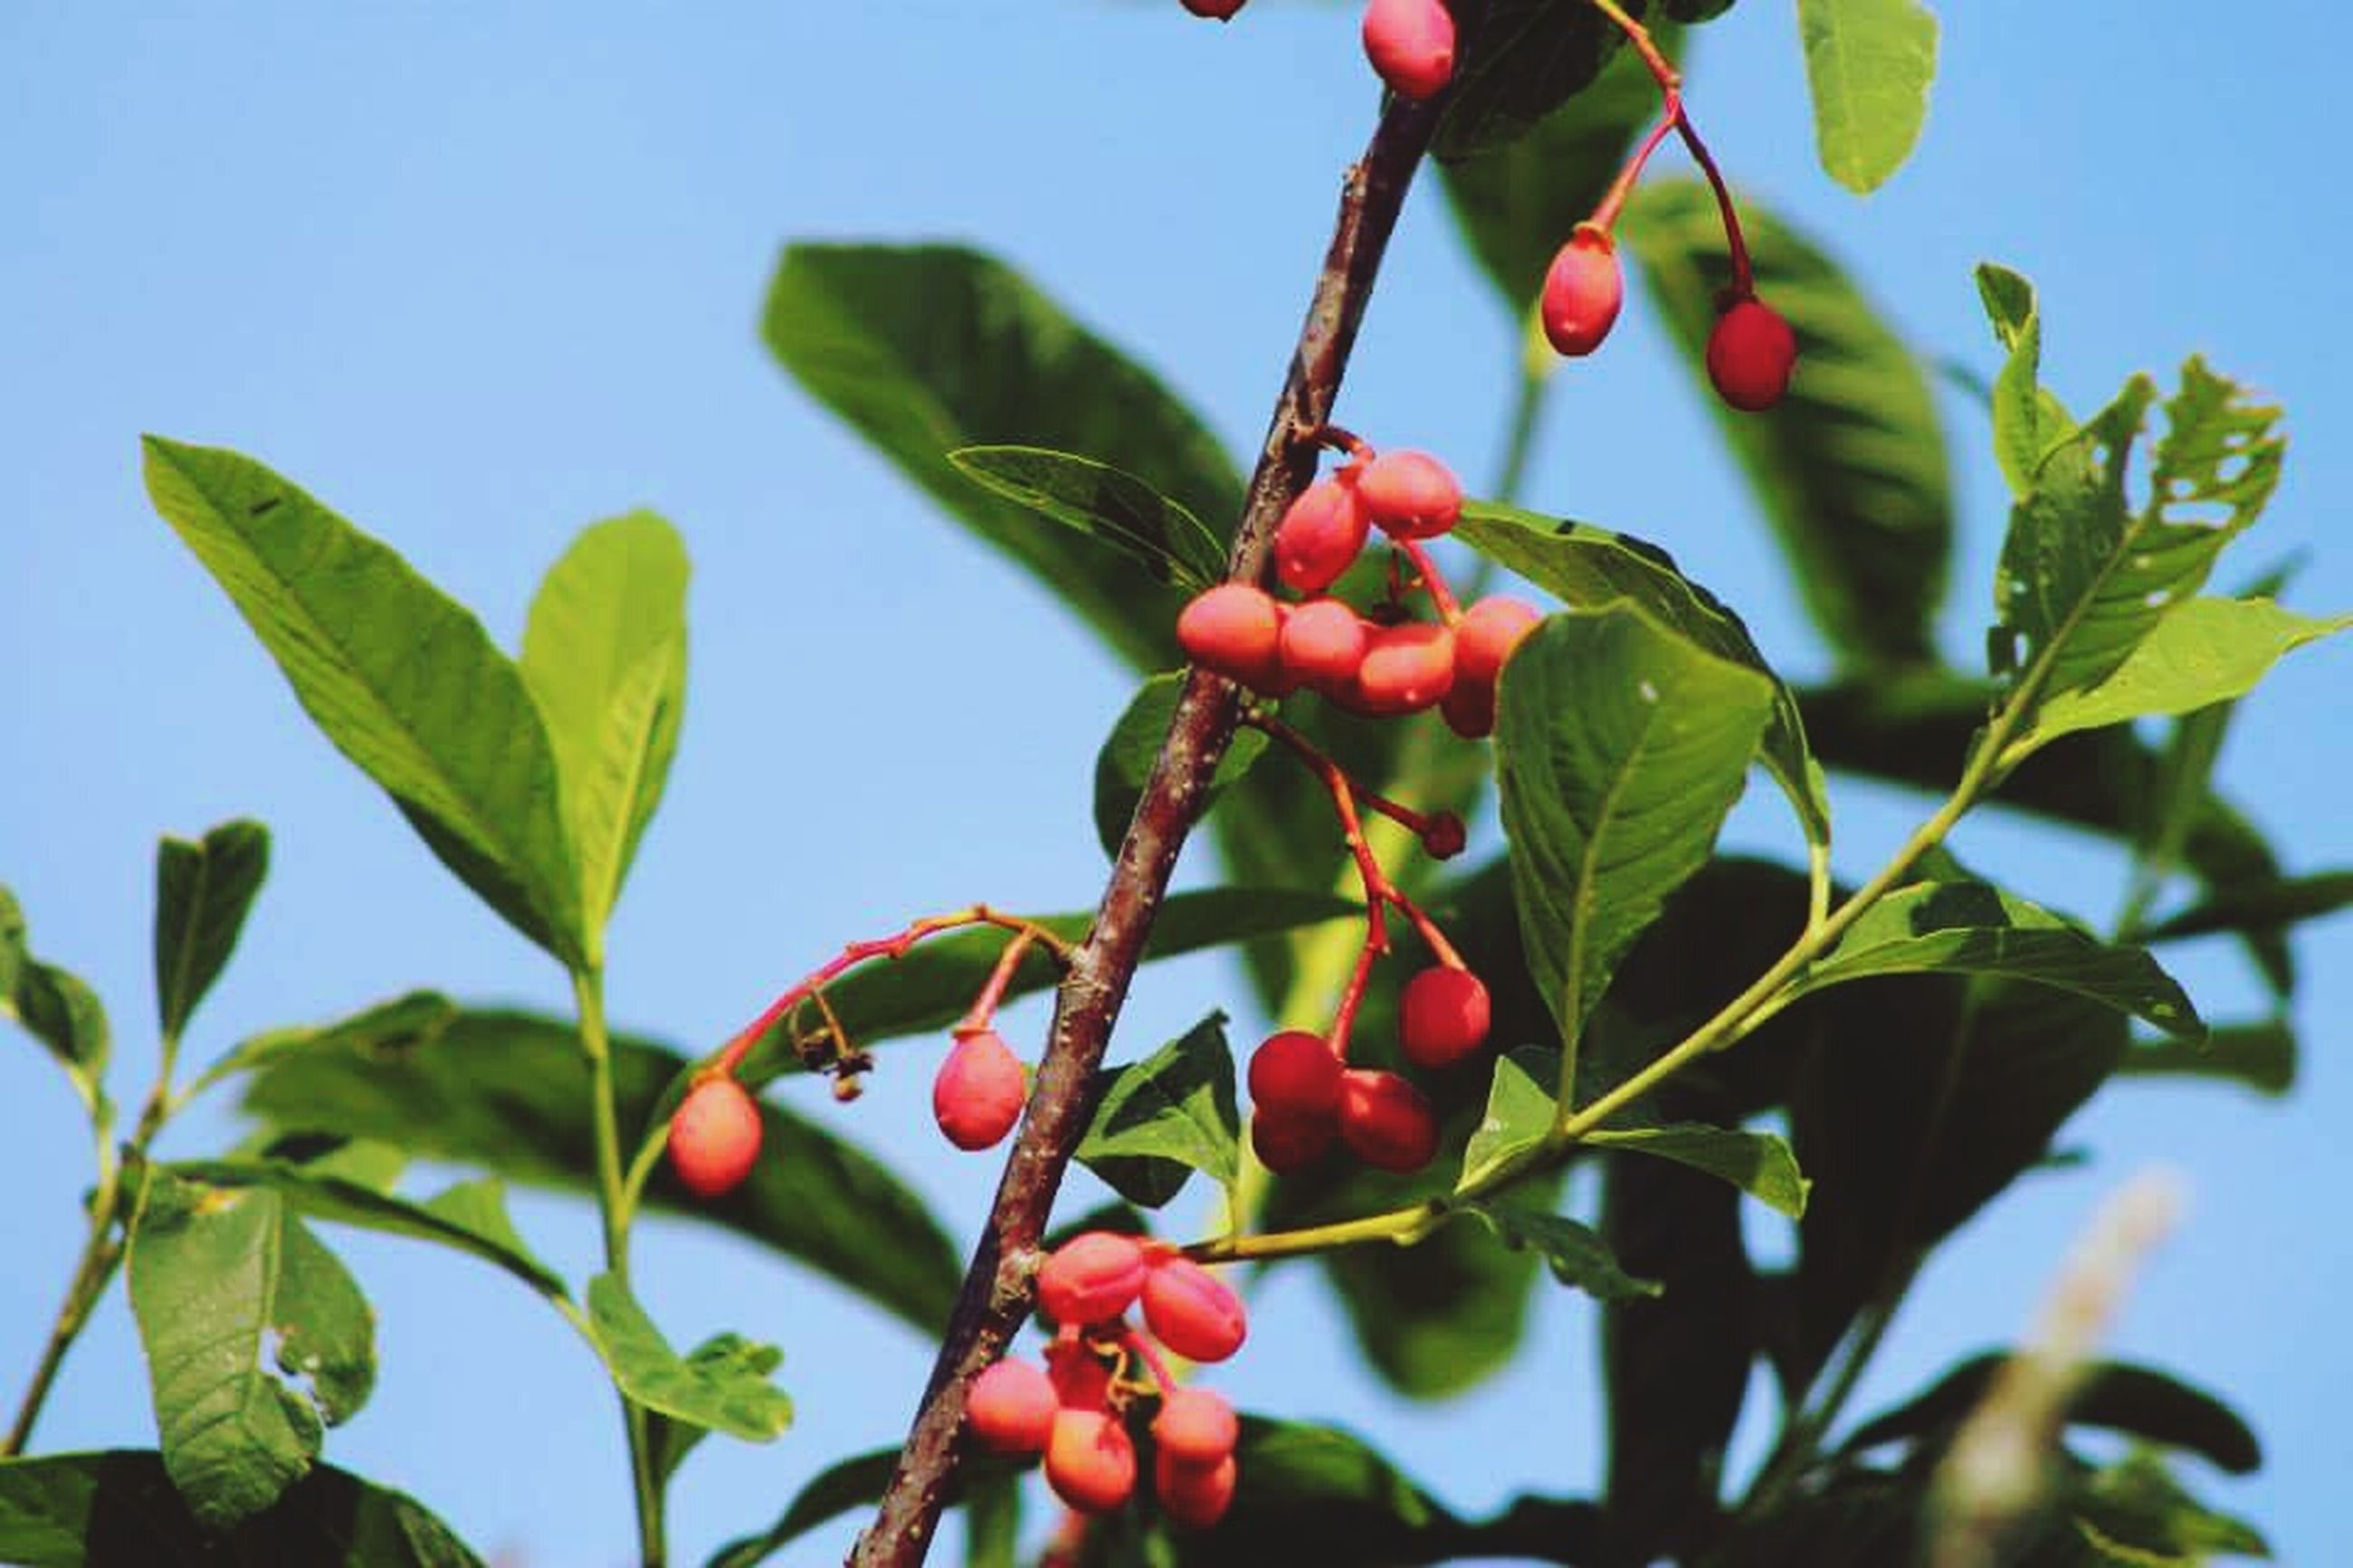 fruit, freshness, leaf, growth, food and drink, branch, food, tree, red, low angle view, close-up, healthy eating, nature, focus on foreground, green color, bud, ripe, plant, beauty in nature, berry